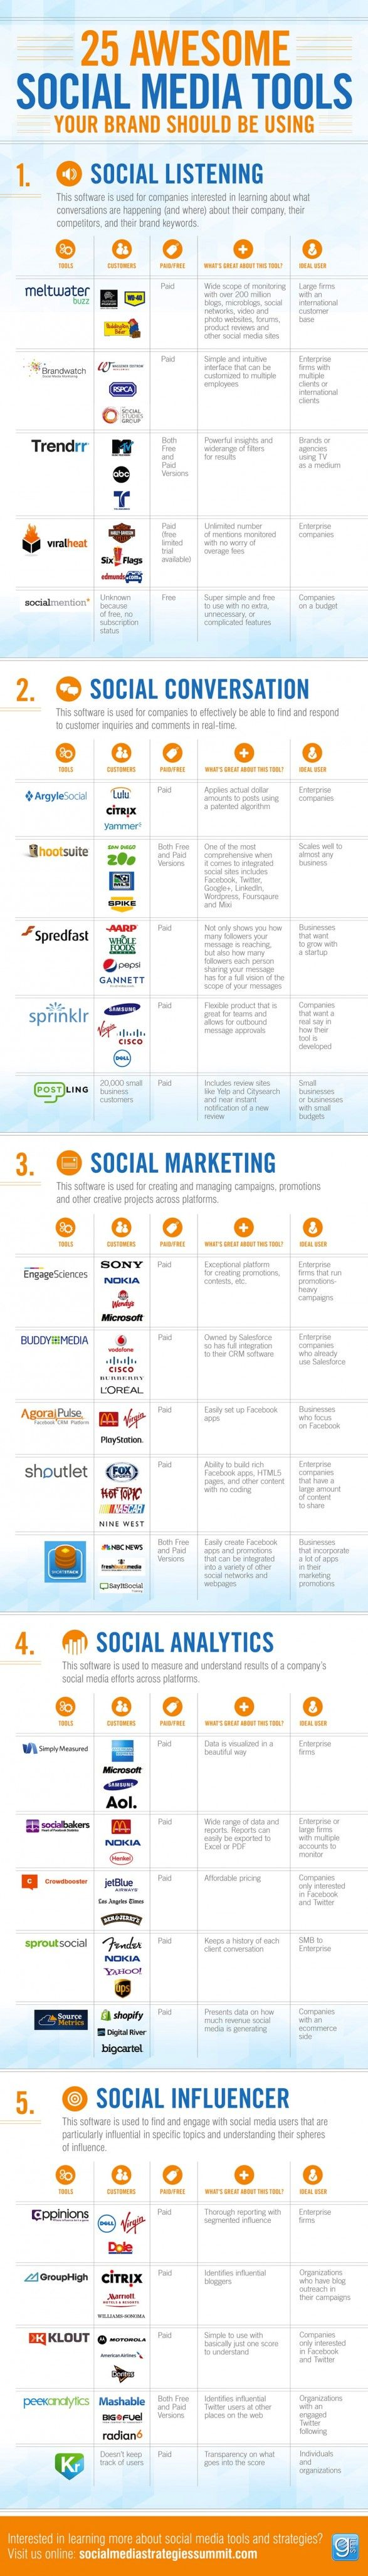 [INFOGRAPHIC] 25 Awesome Social Media Tools Your Brand Should be Using: Listening; Conversation; Marketing; Analytics; Influencing